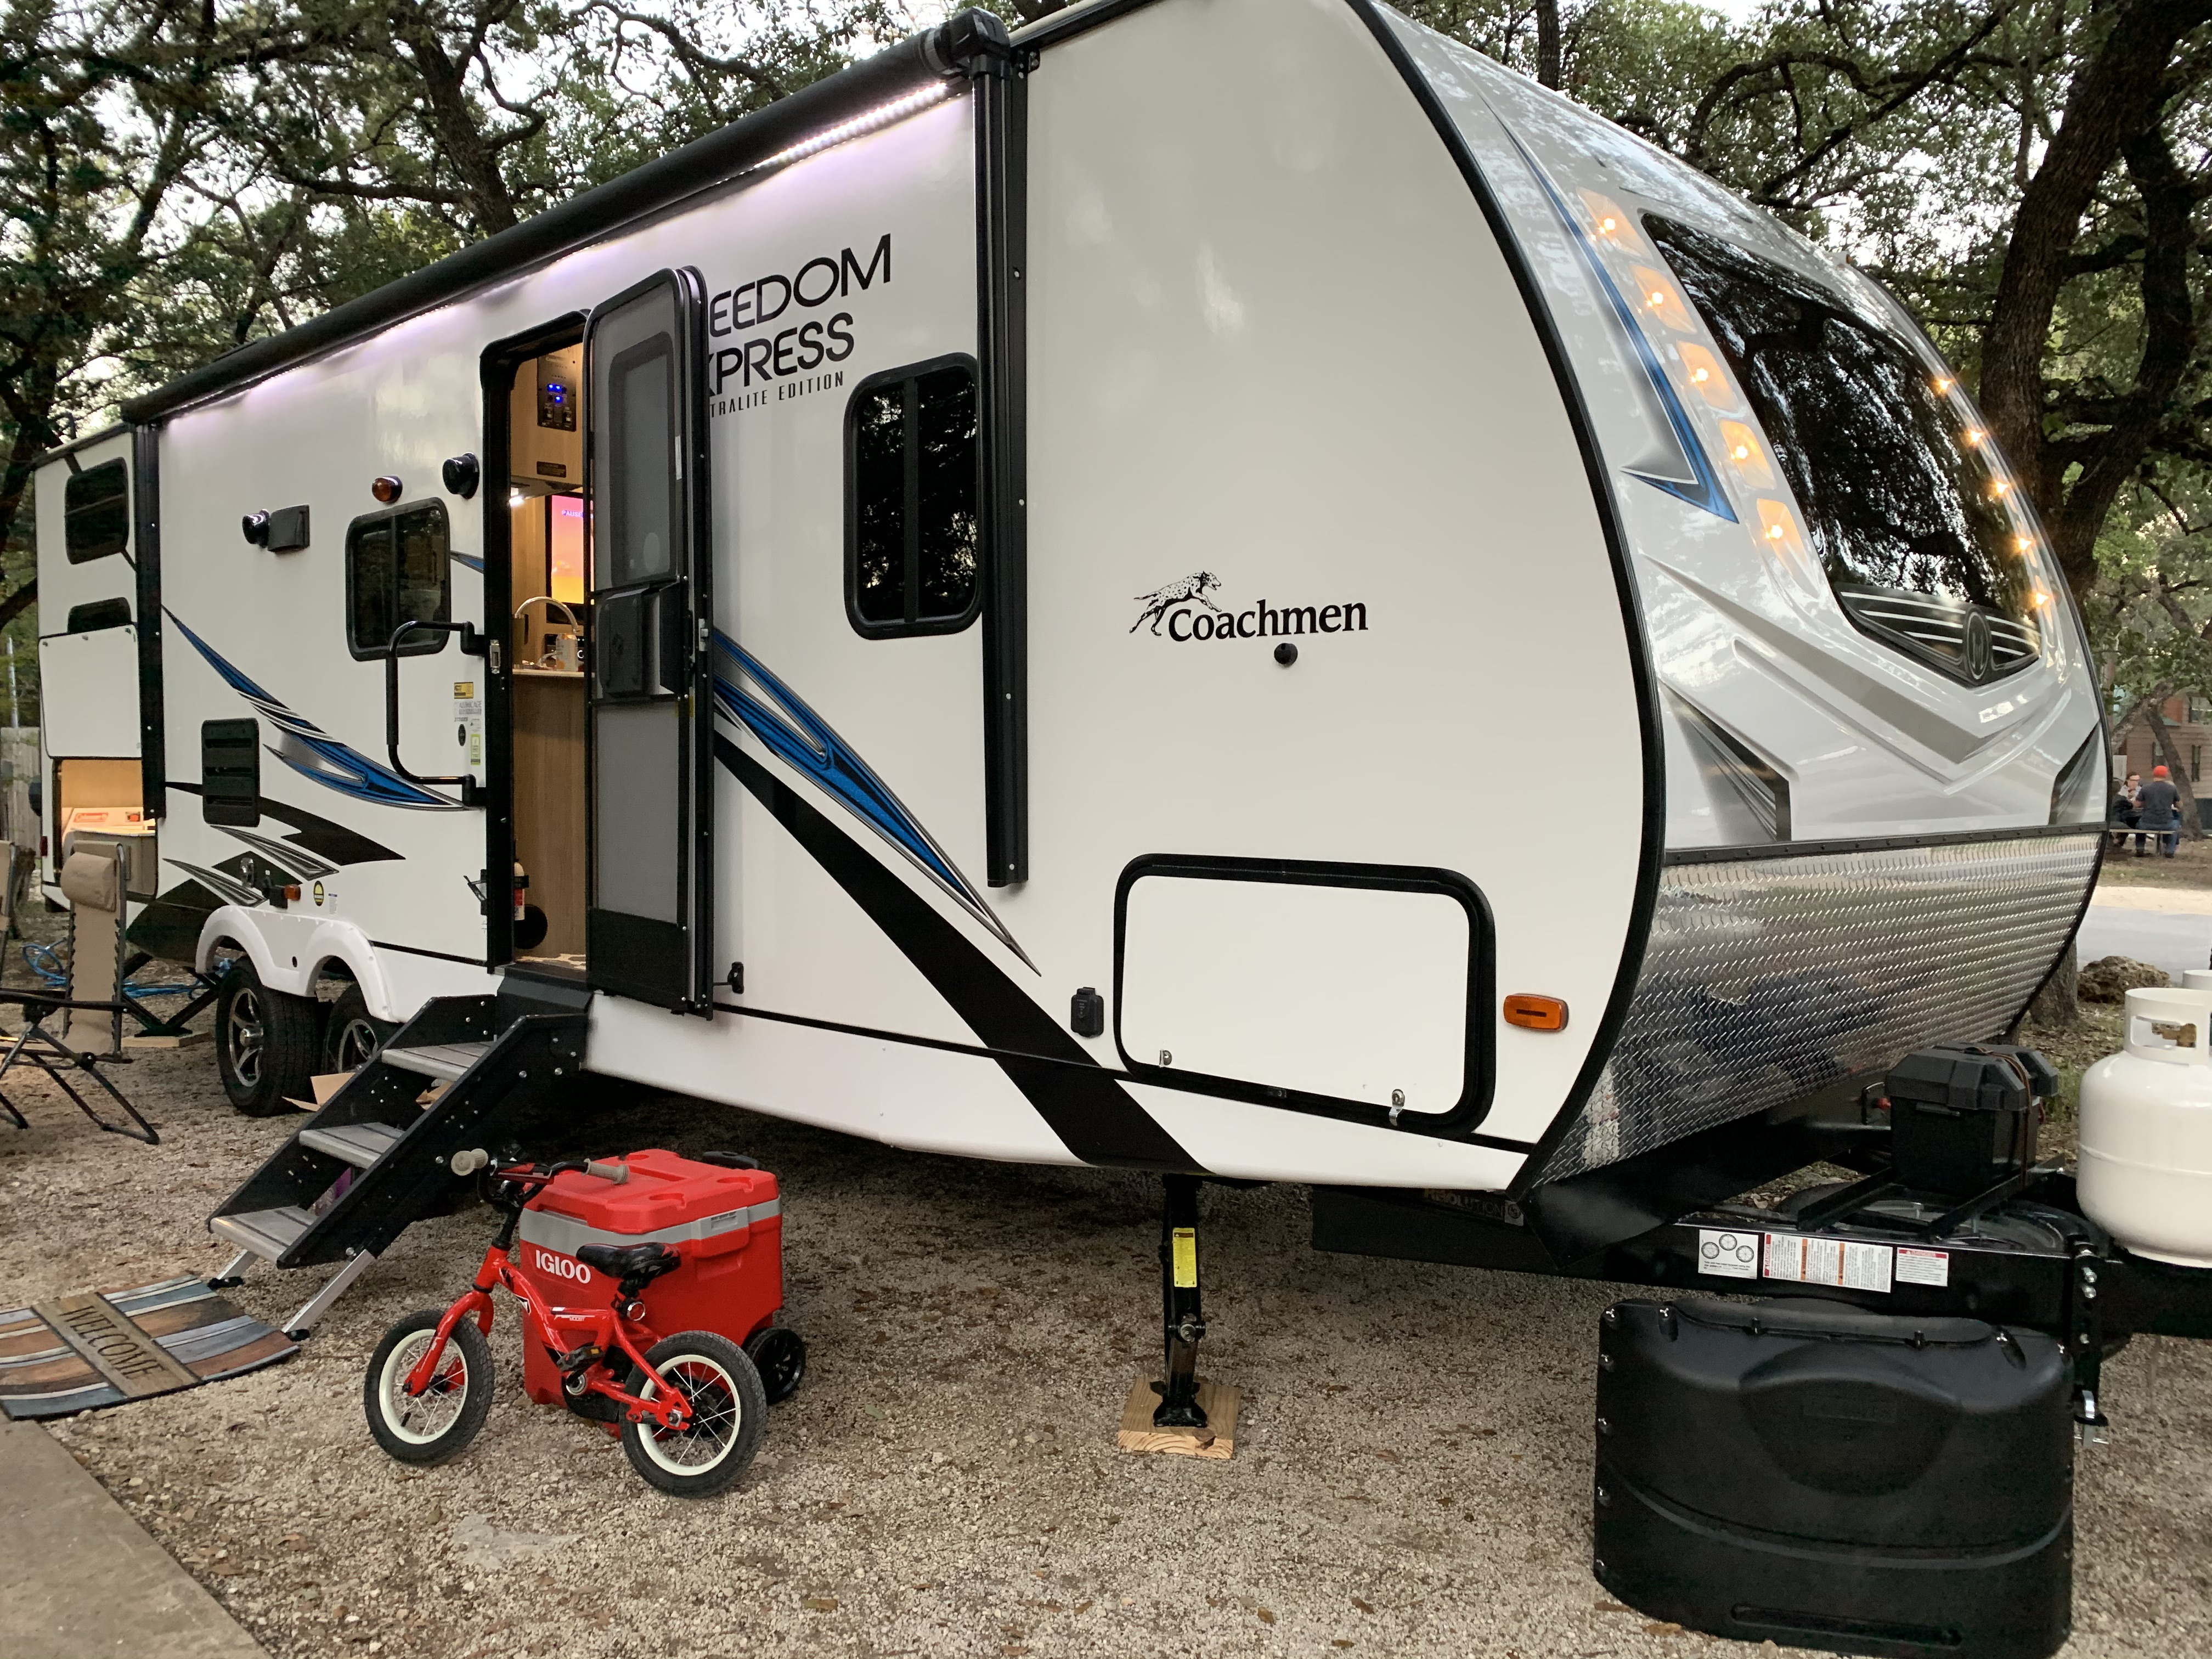 Built in exterior lighting under the awning and in front of the trailer add plenty of light at night . Coachmen Freedom Express 2020